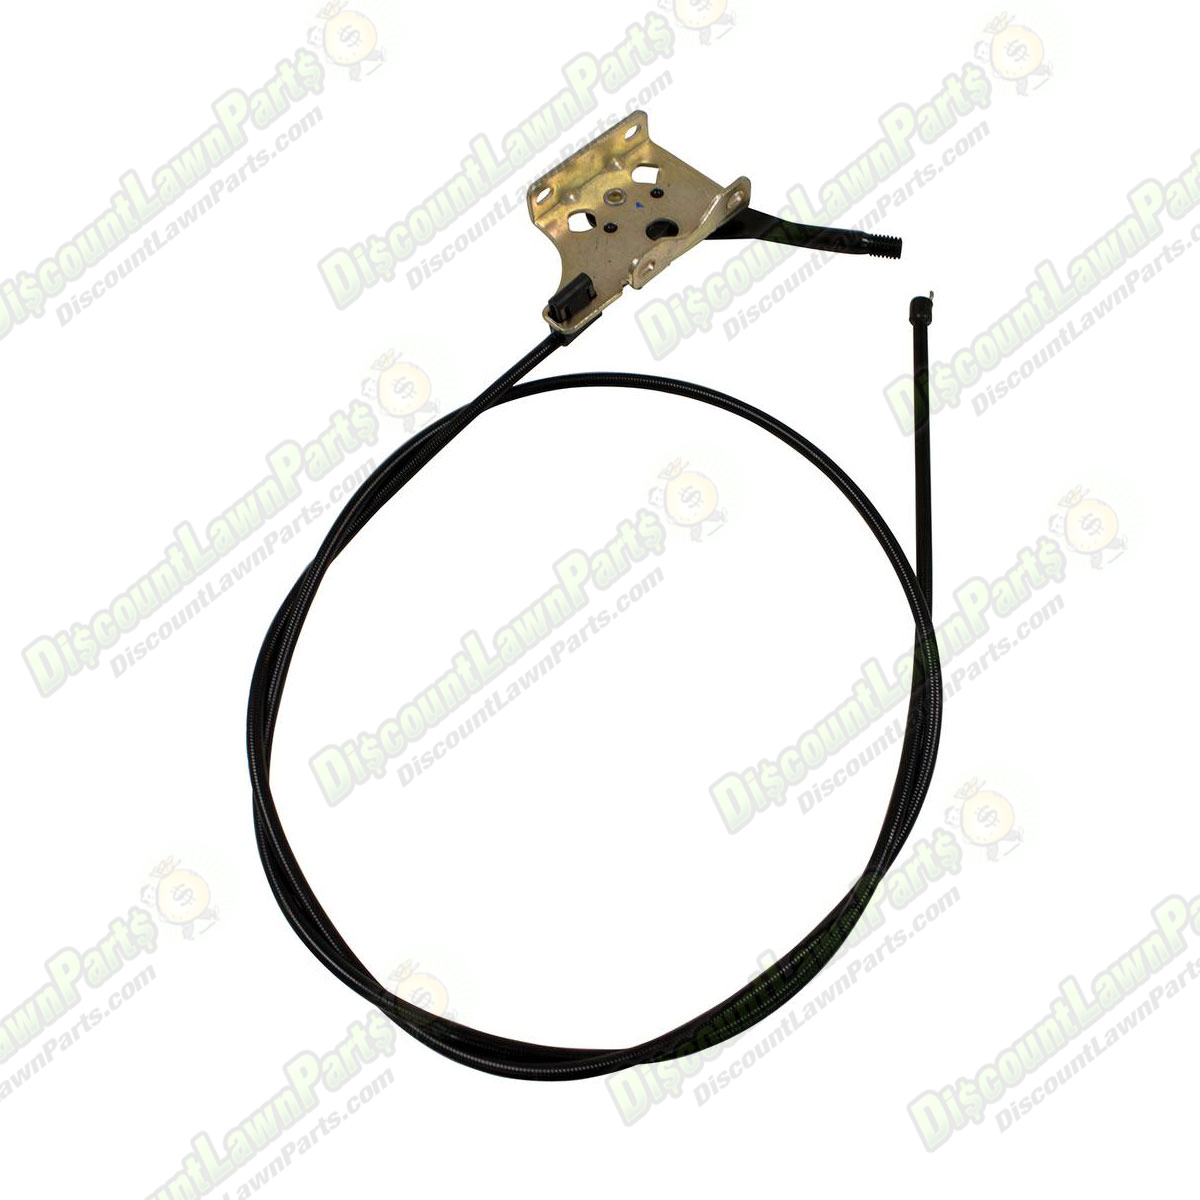 Throttle Control Cable Exmark 110